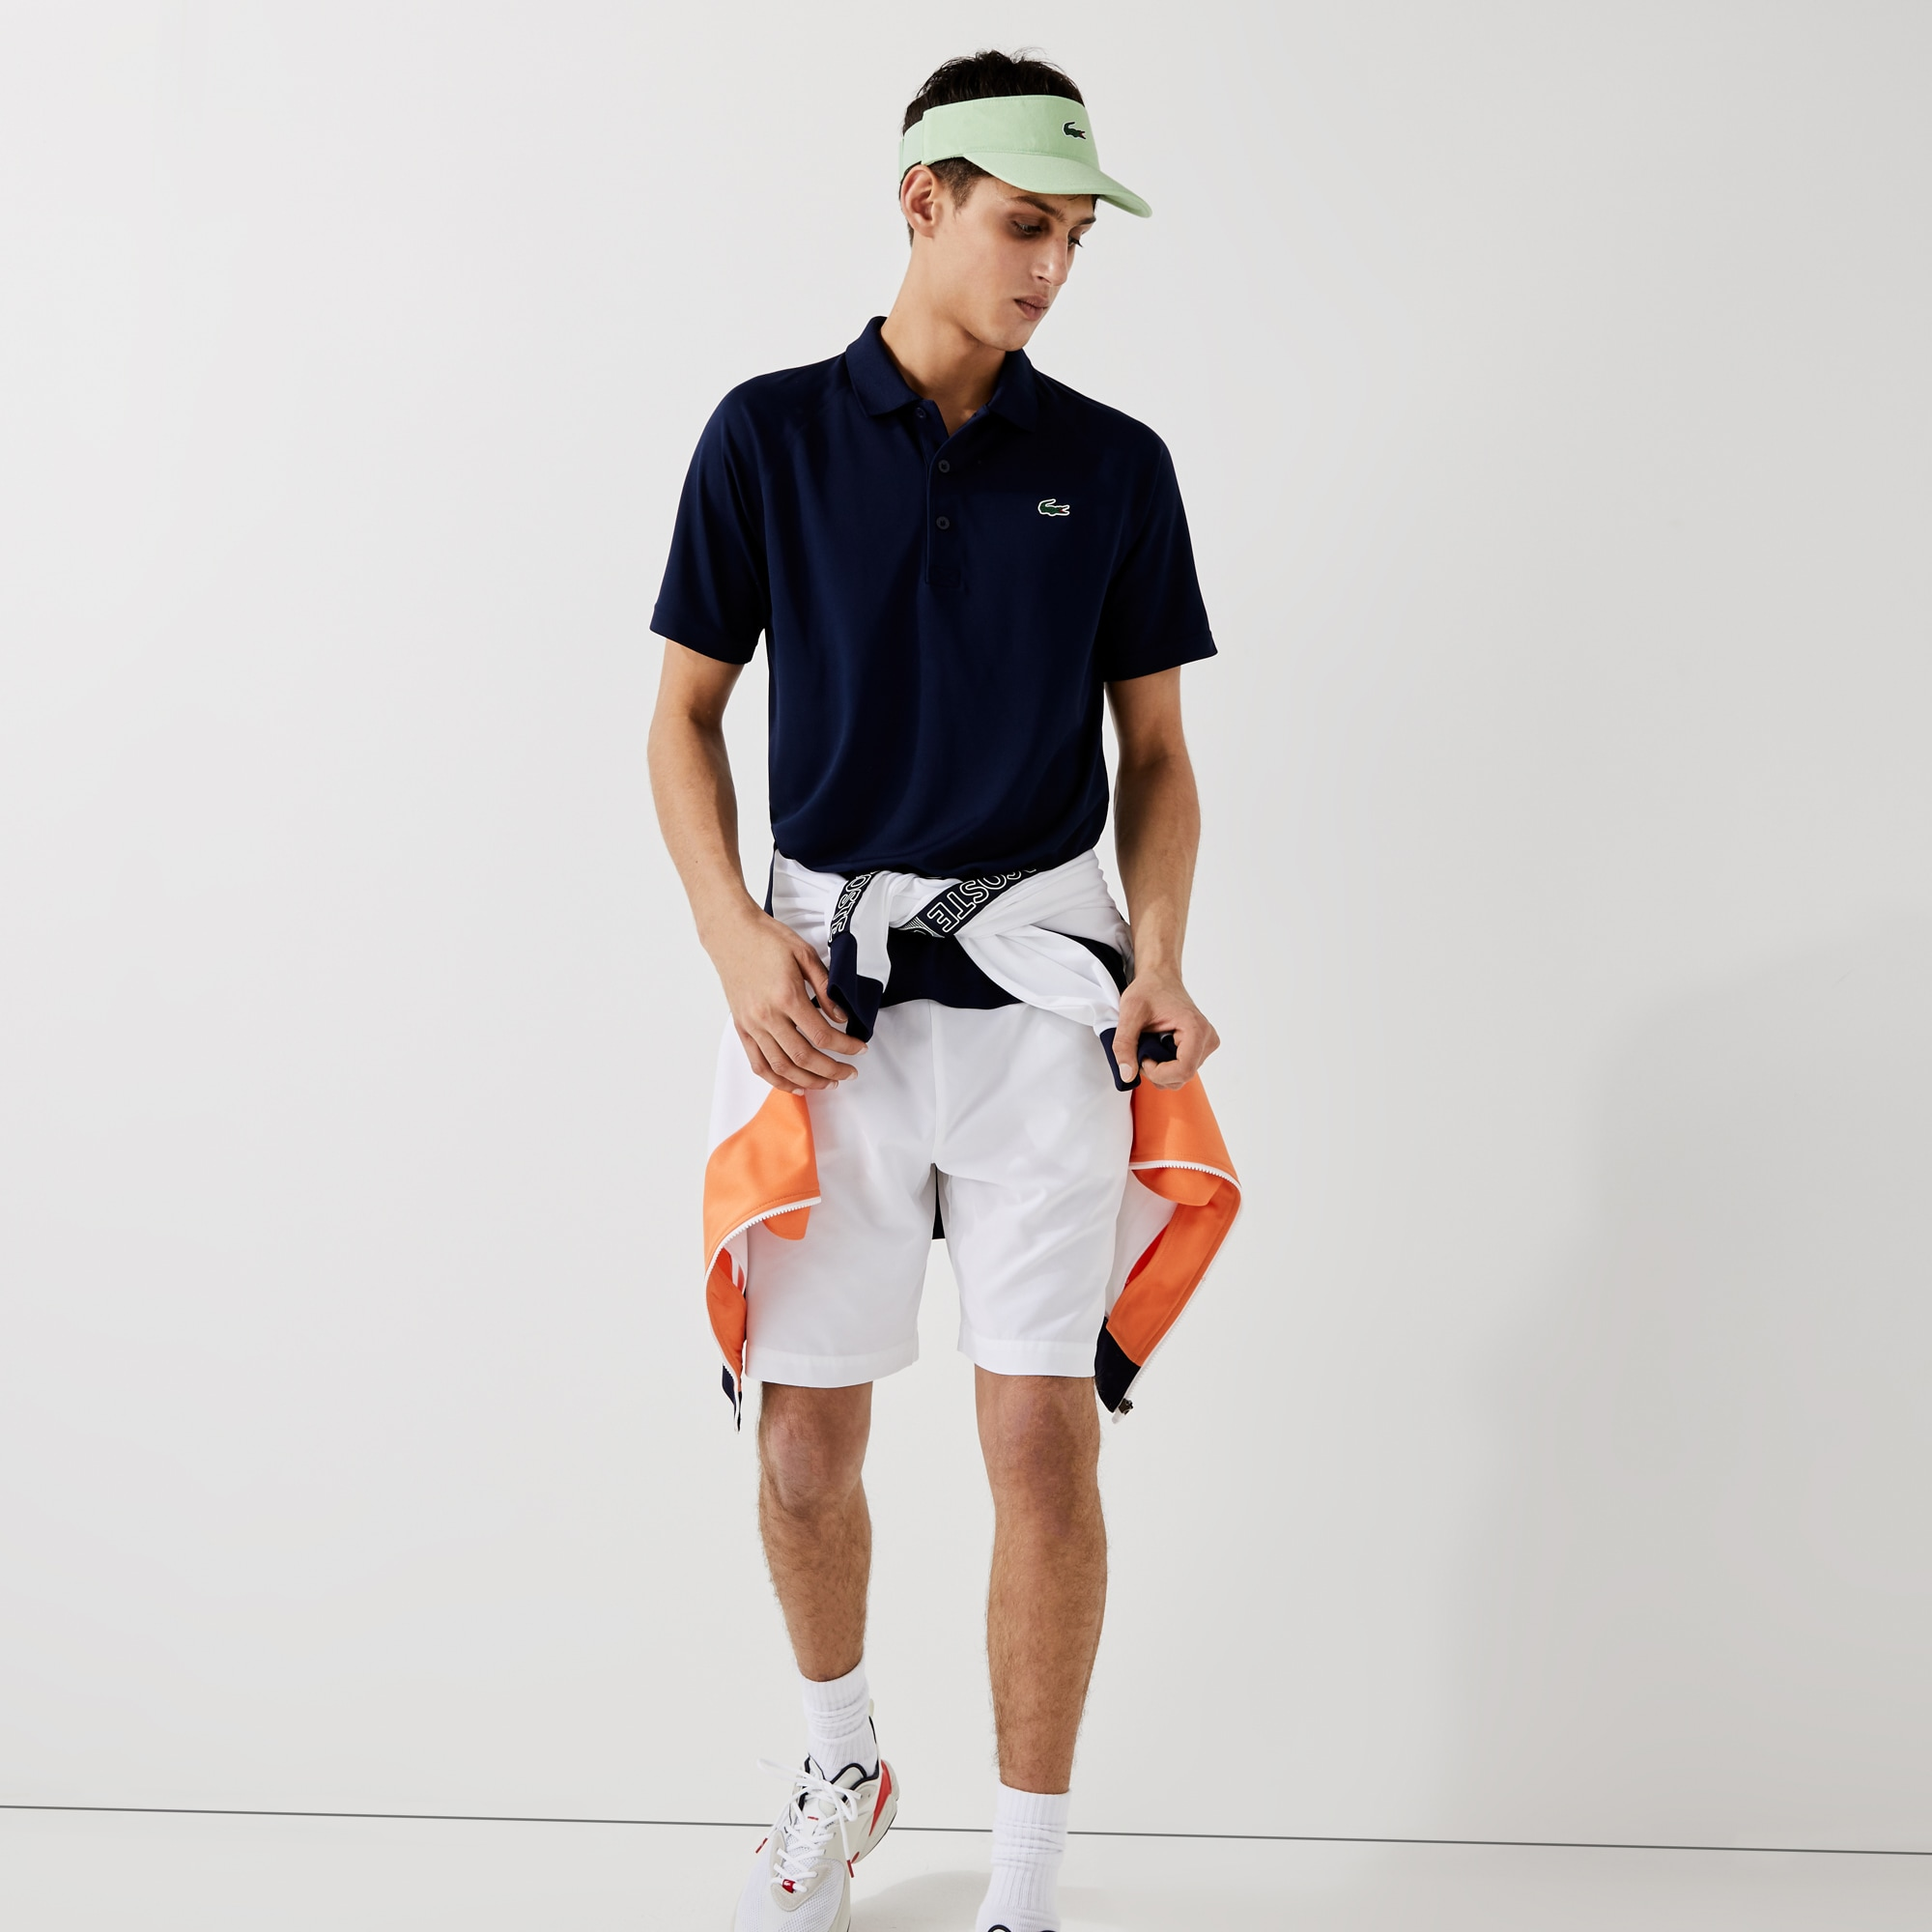 라코스테 Lacoste Mens SPORT Breathable Run-Resistant Interlock Polo Shirt